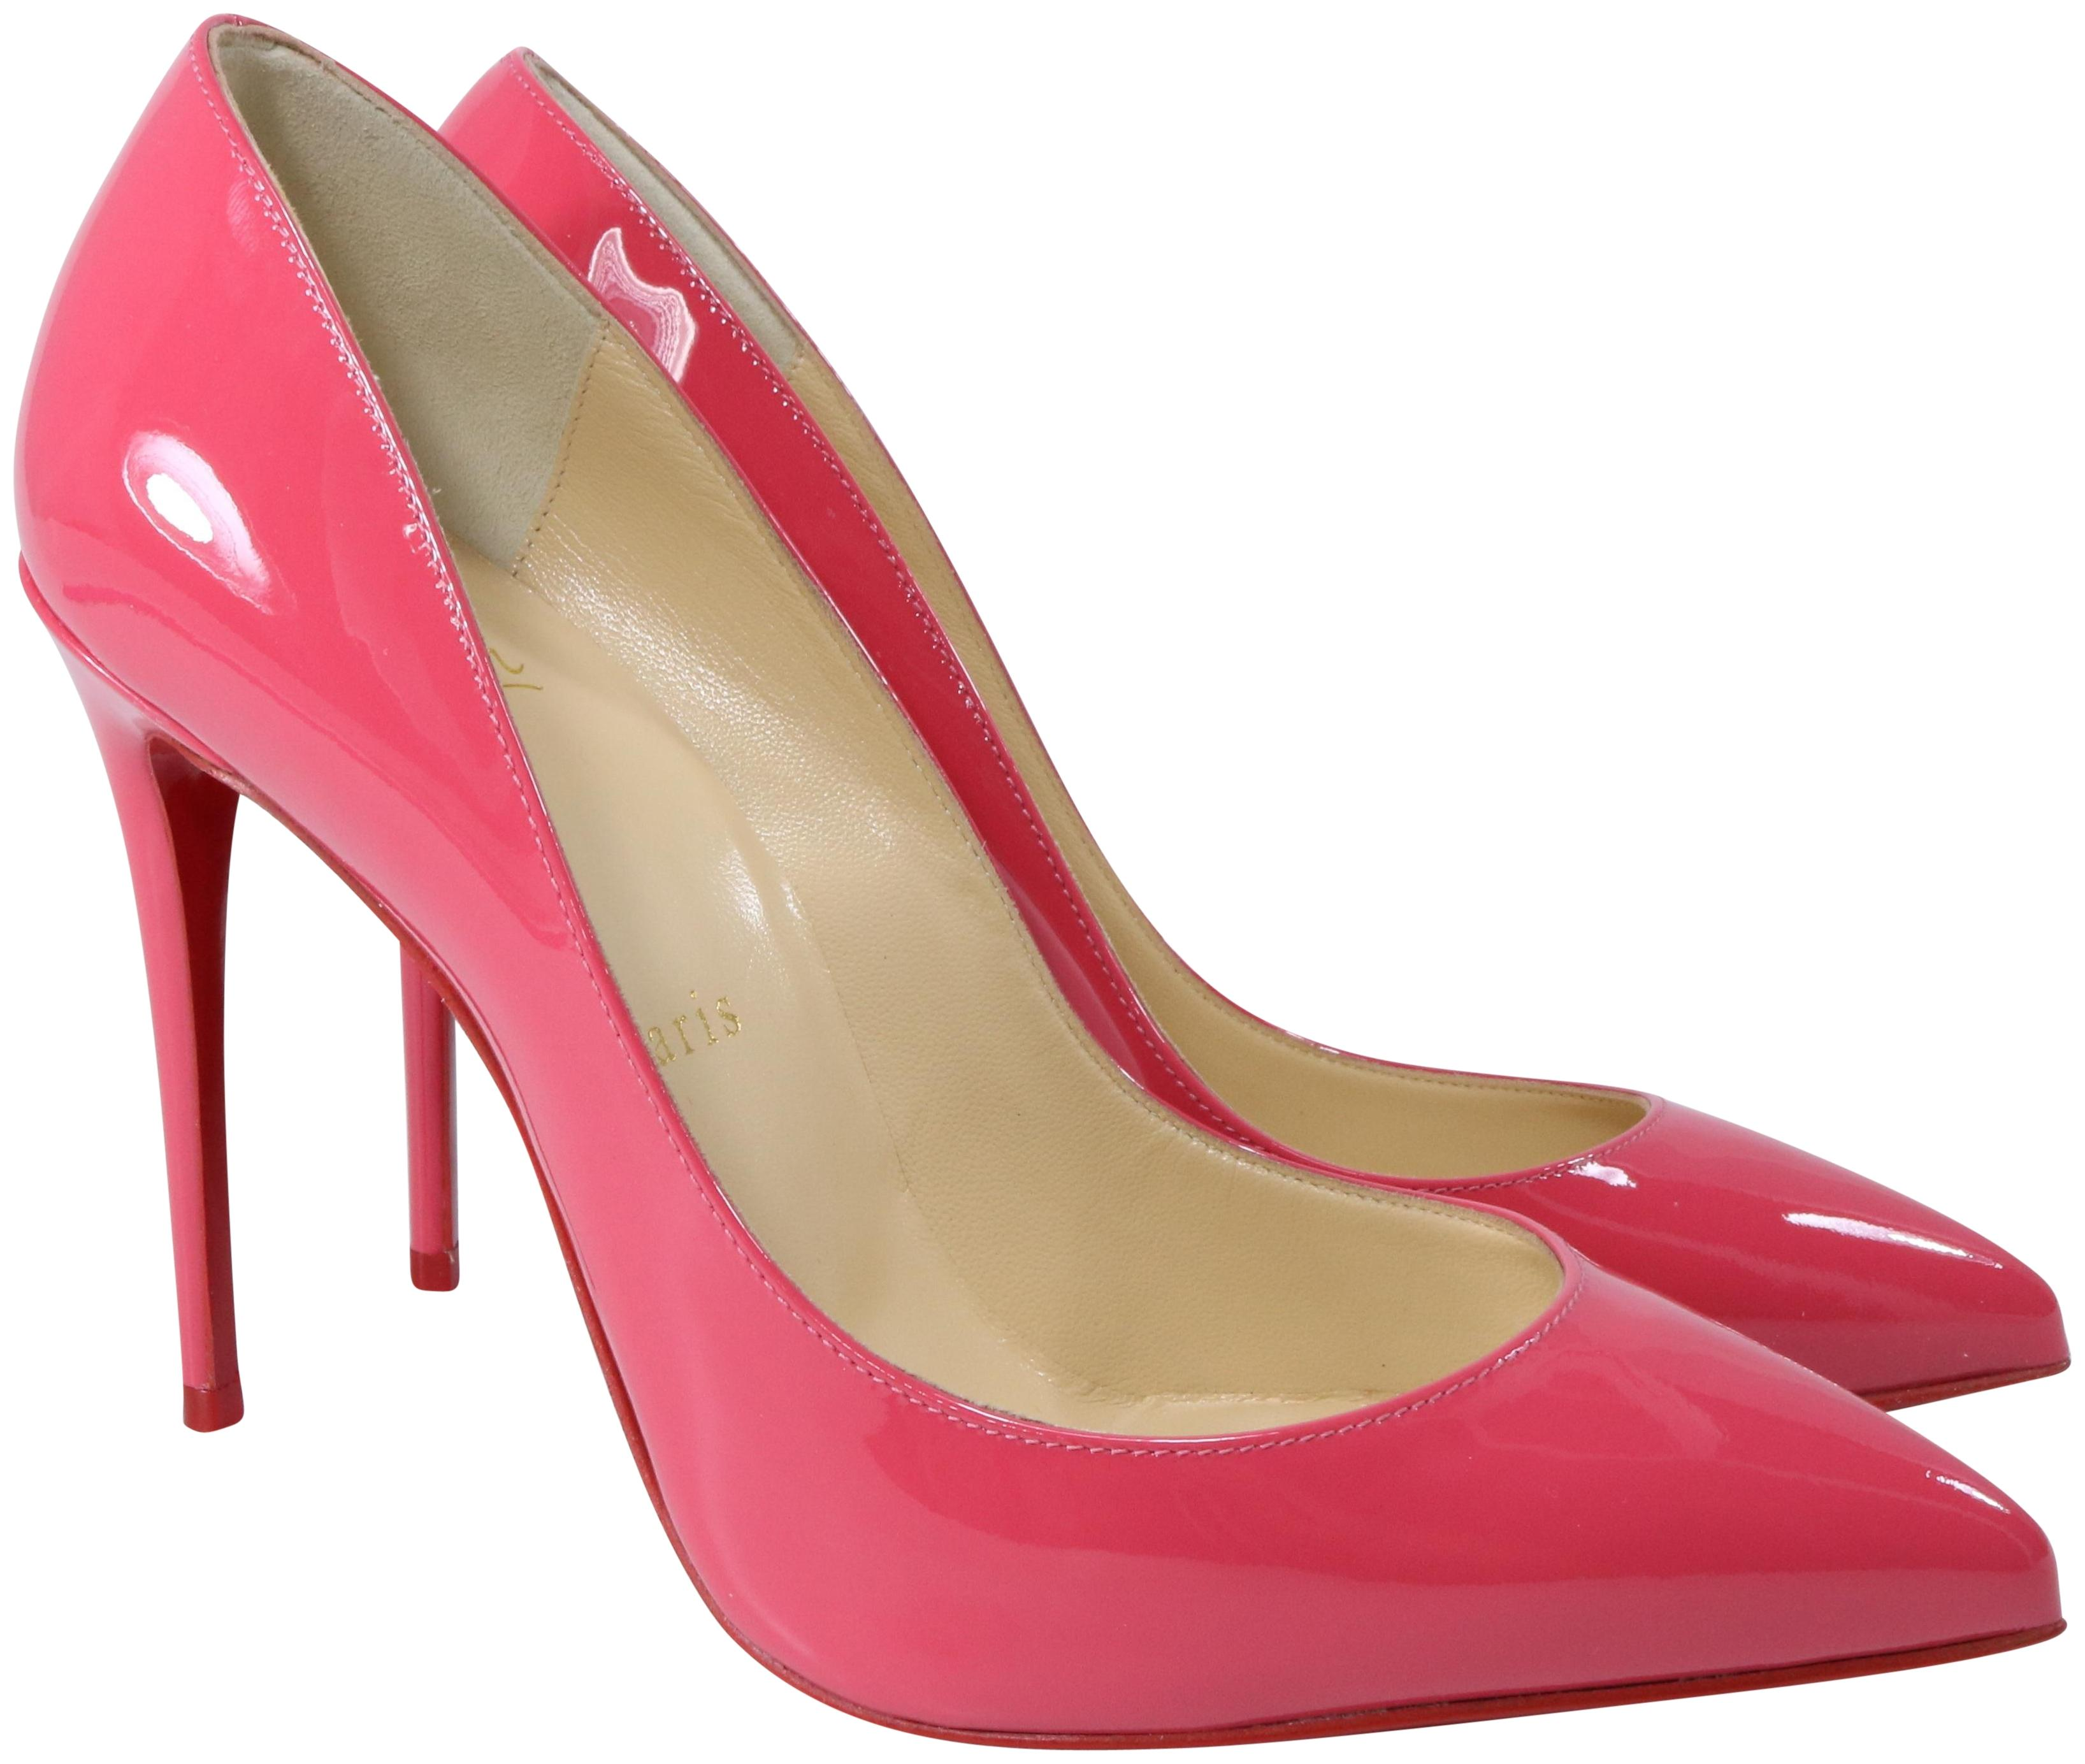 Christian Louboutin Begonia Pink Pigalle Follies Patent 100mm A821 Pumps Size EU 36.5 (Approx. US 6.5) Regular (M, B)